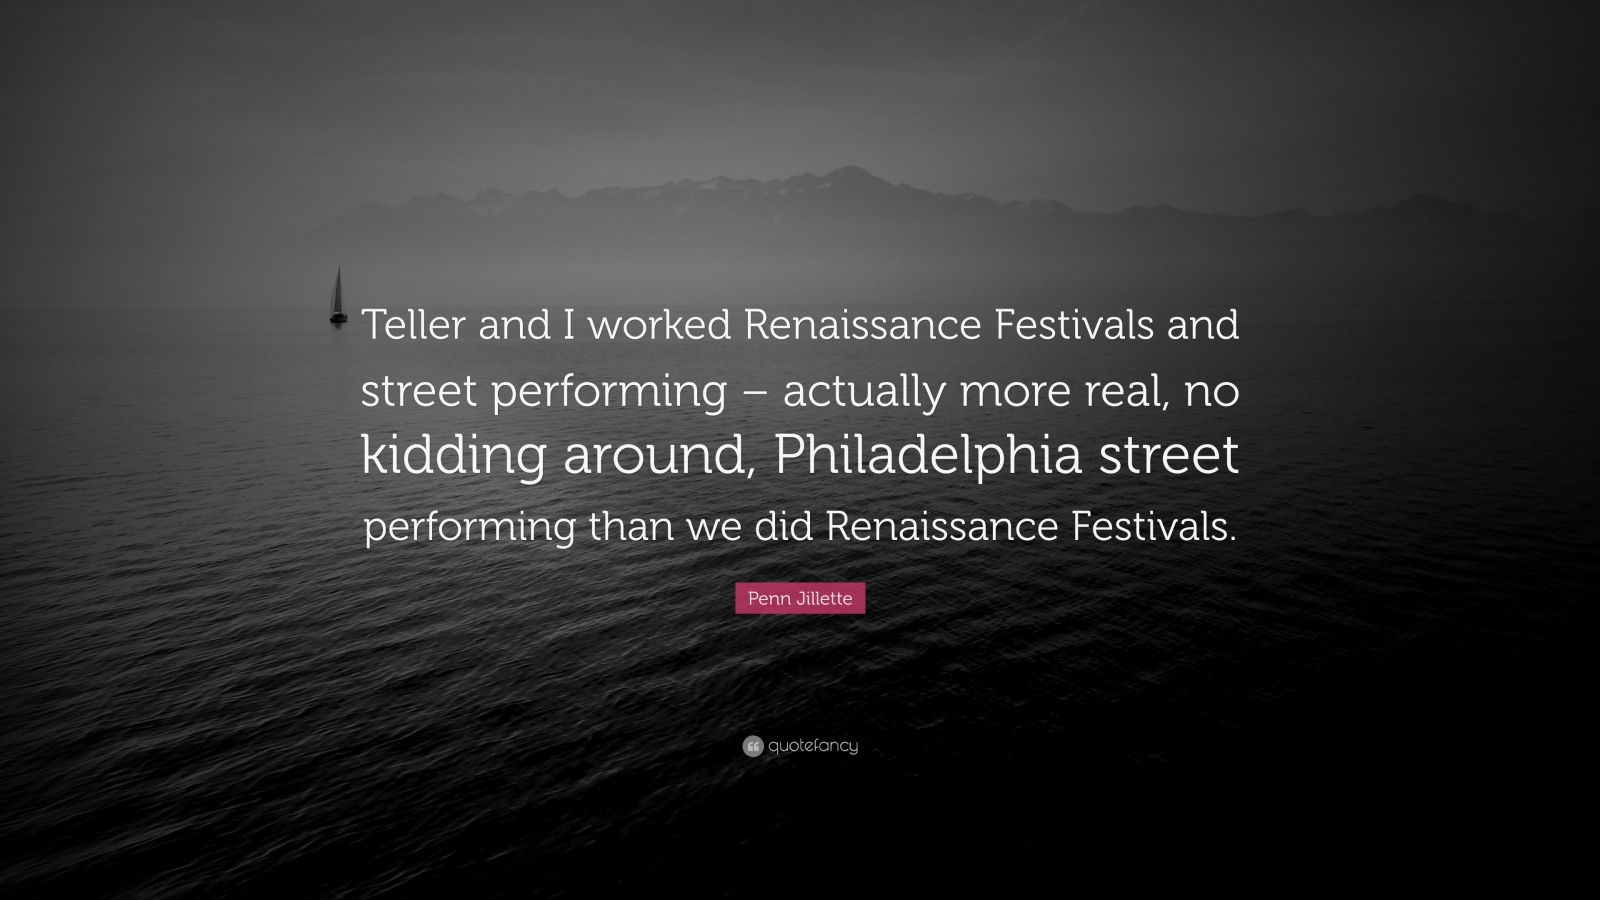 "Penn Jillette Quote: ""Teller and I worked Renaissance Festivals and street performing – actually more real, no kidding around, Philadelphia street performing than we did Renaissance Festivals."""